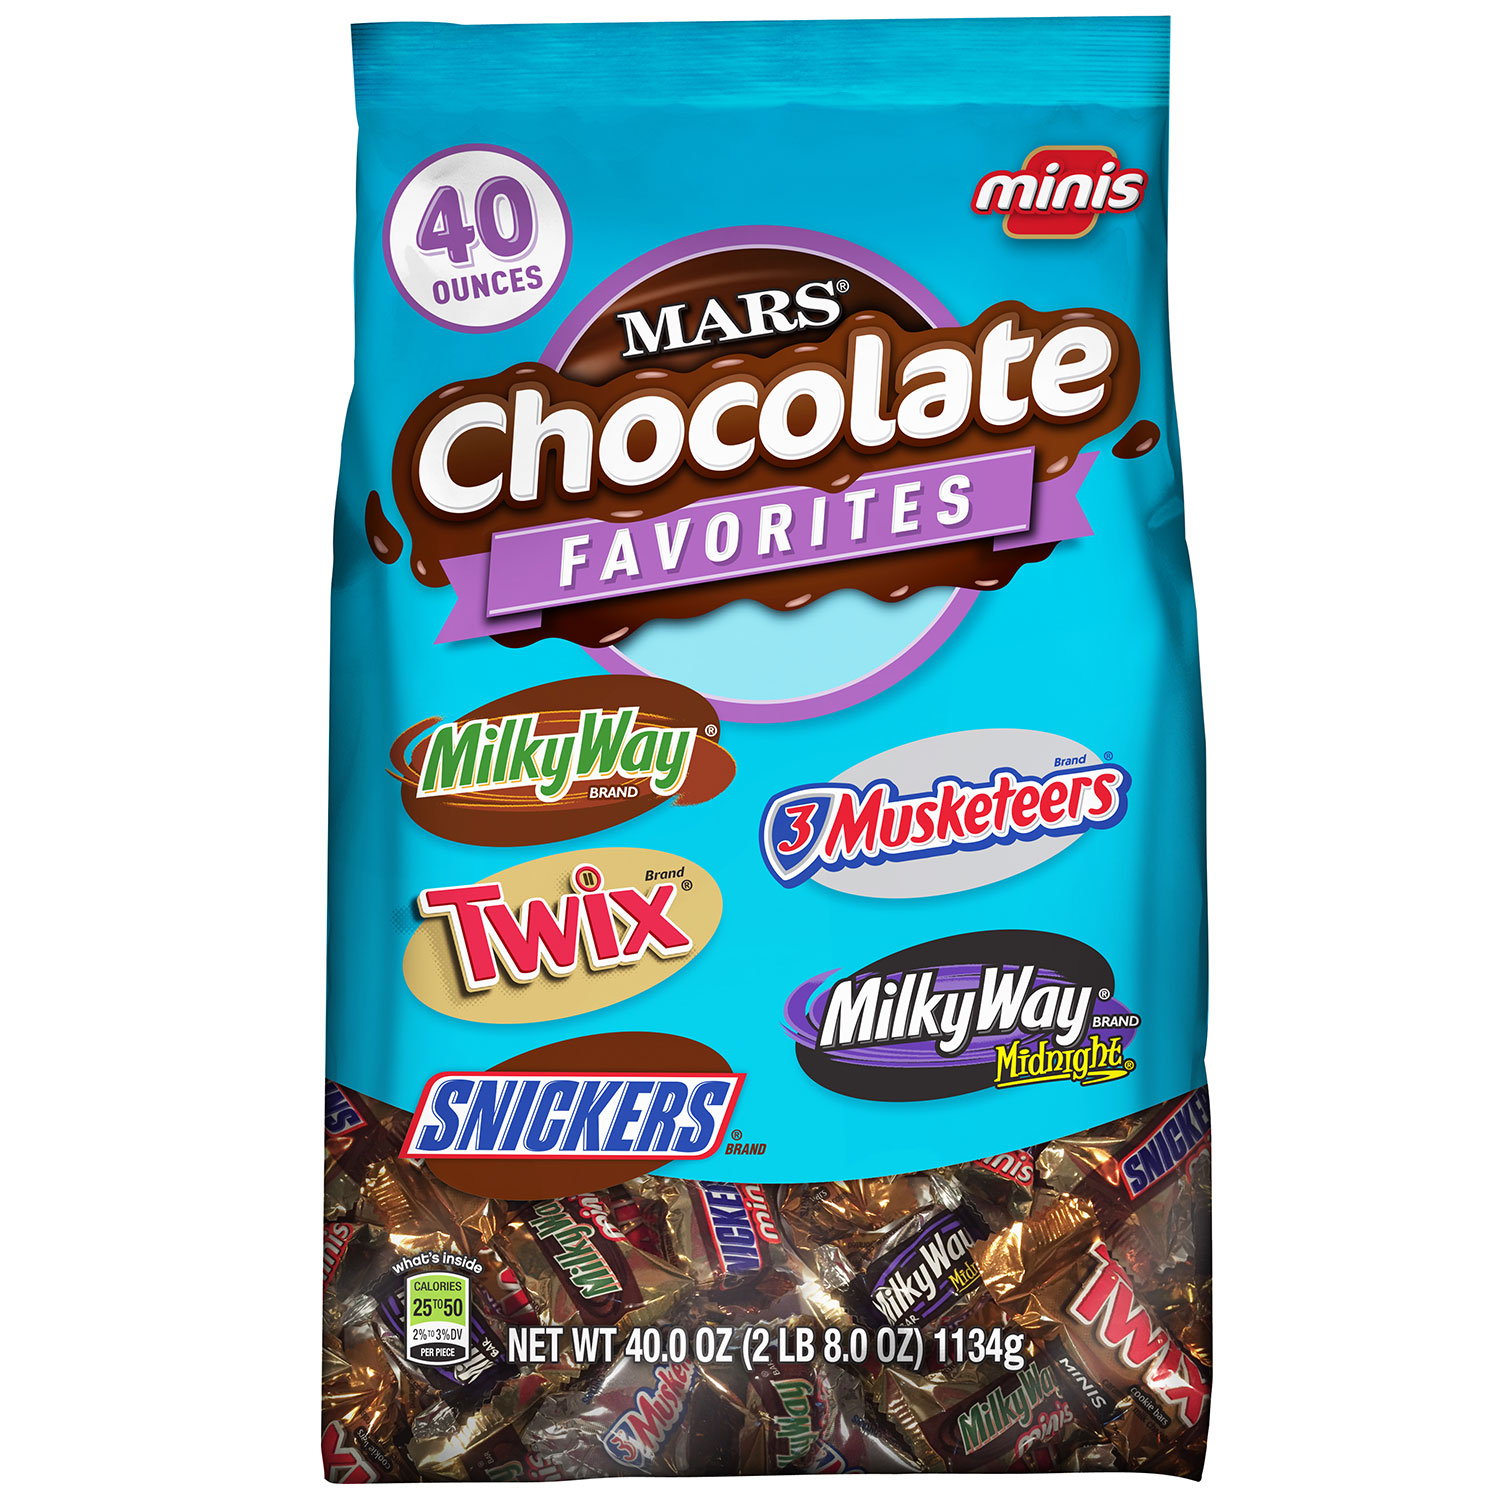 MARS Chocolate Favorites Minis Size Candy Bars Assorted Variety Mix Bag (TWIX, MILKY WAY, SNICKERS, 3 MUSKETEERS Brands), 2.5 lb